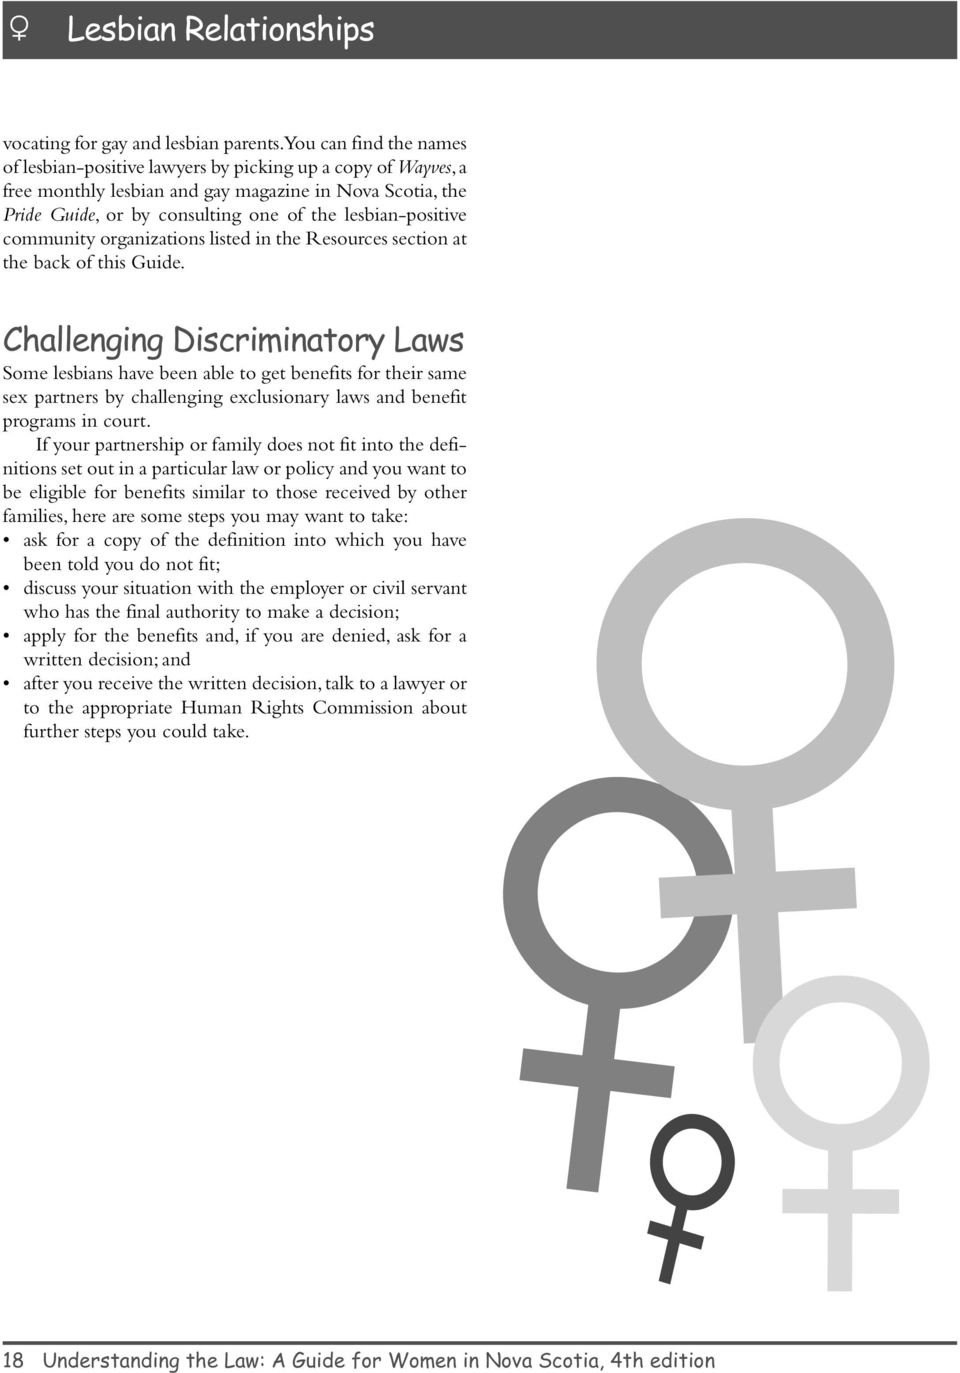 lesbian-positive community organizations listed in the Resources section at the back of this Guide.